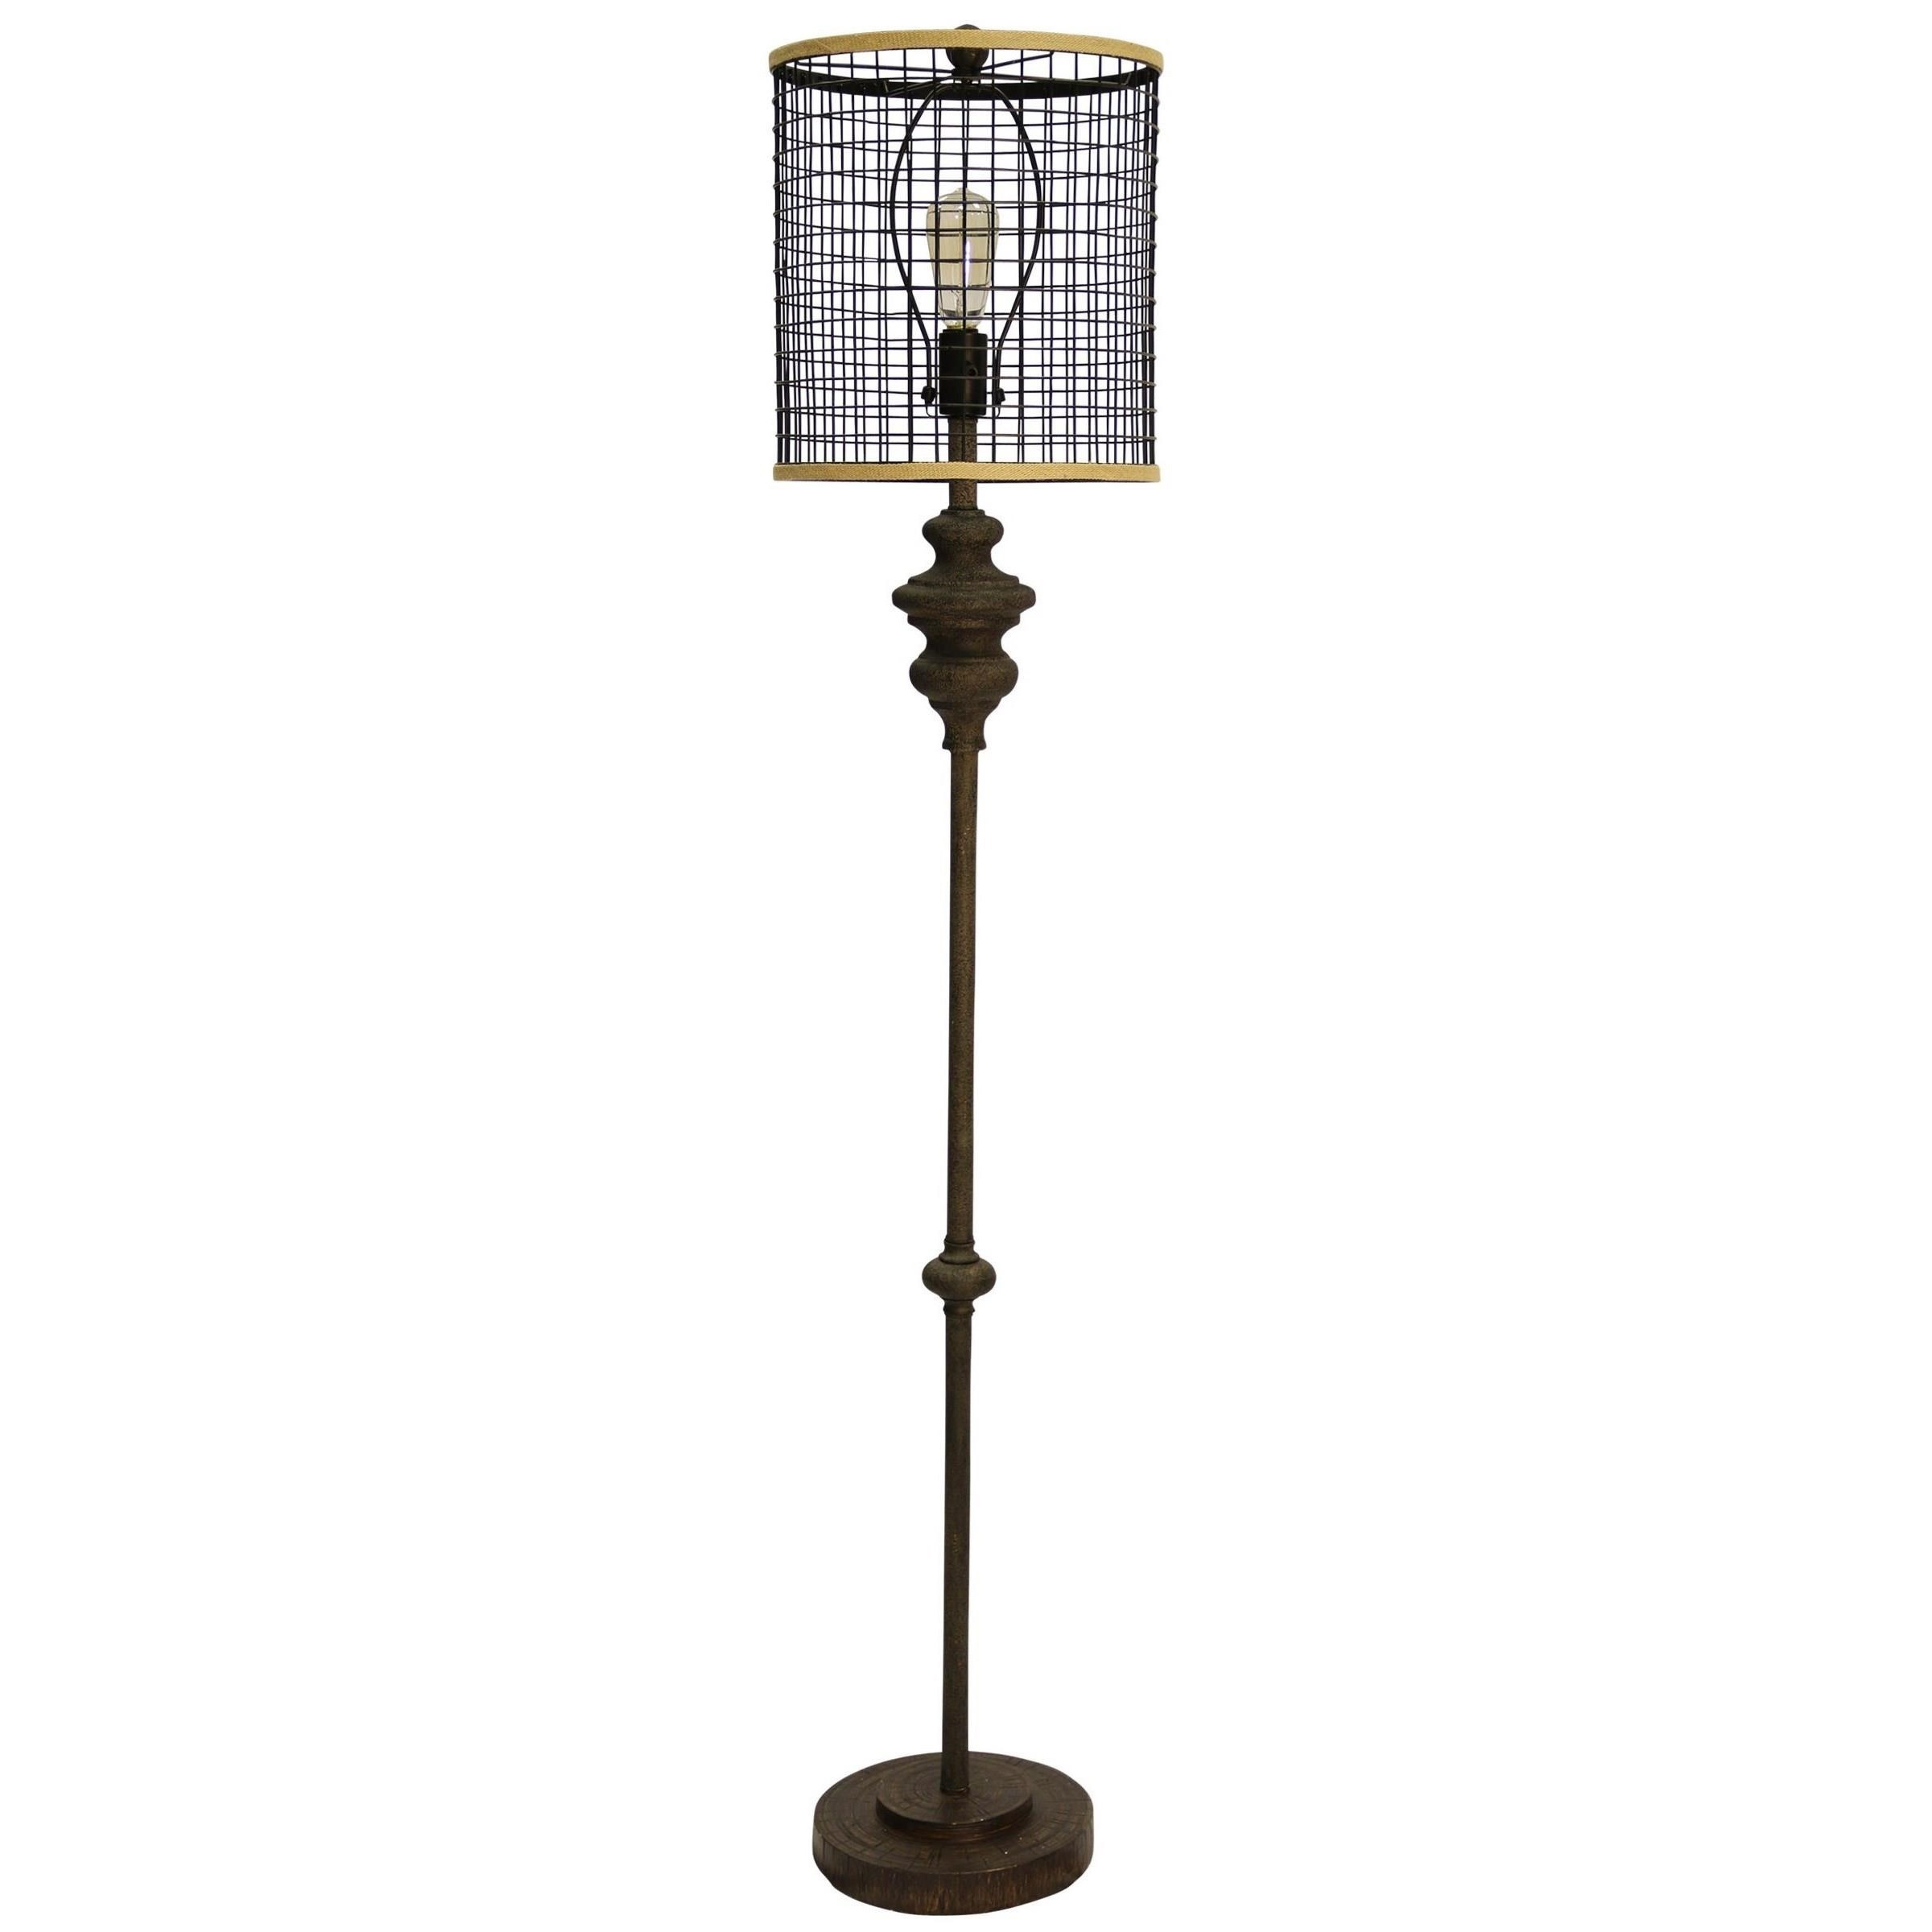 Lamps Industrial Floor Lamp by StyleCraft at Alison Craig Home Furnishings